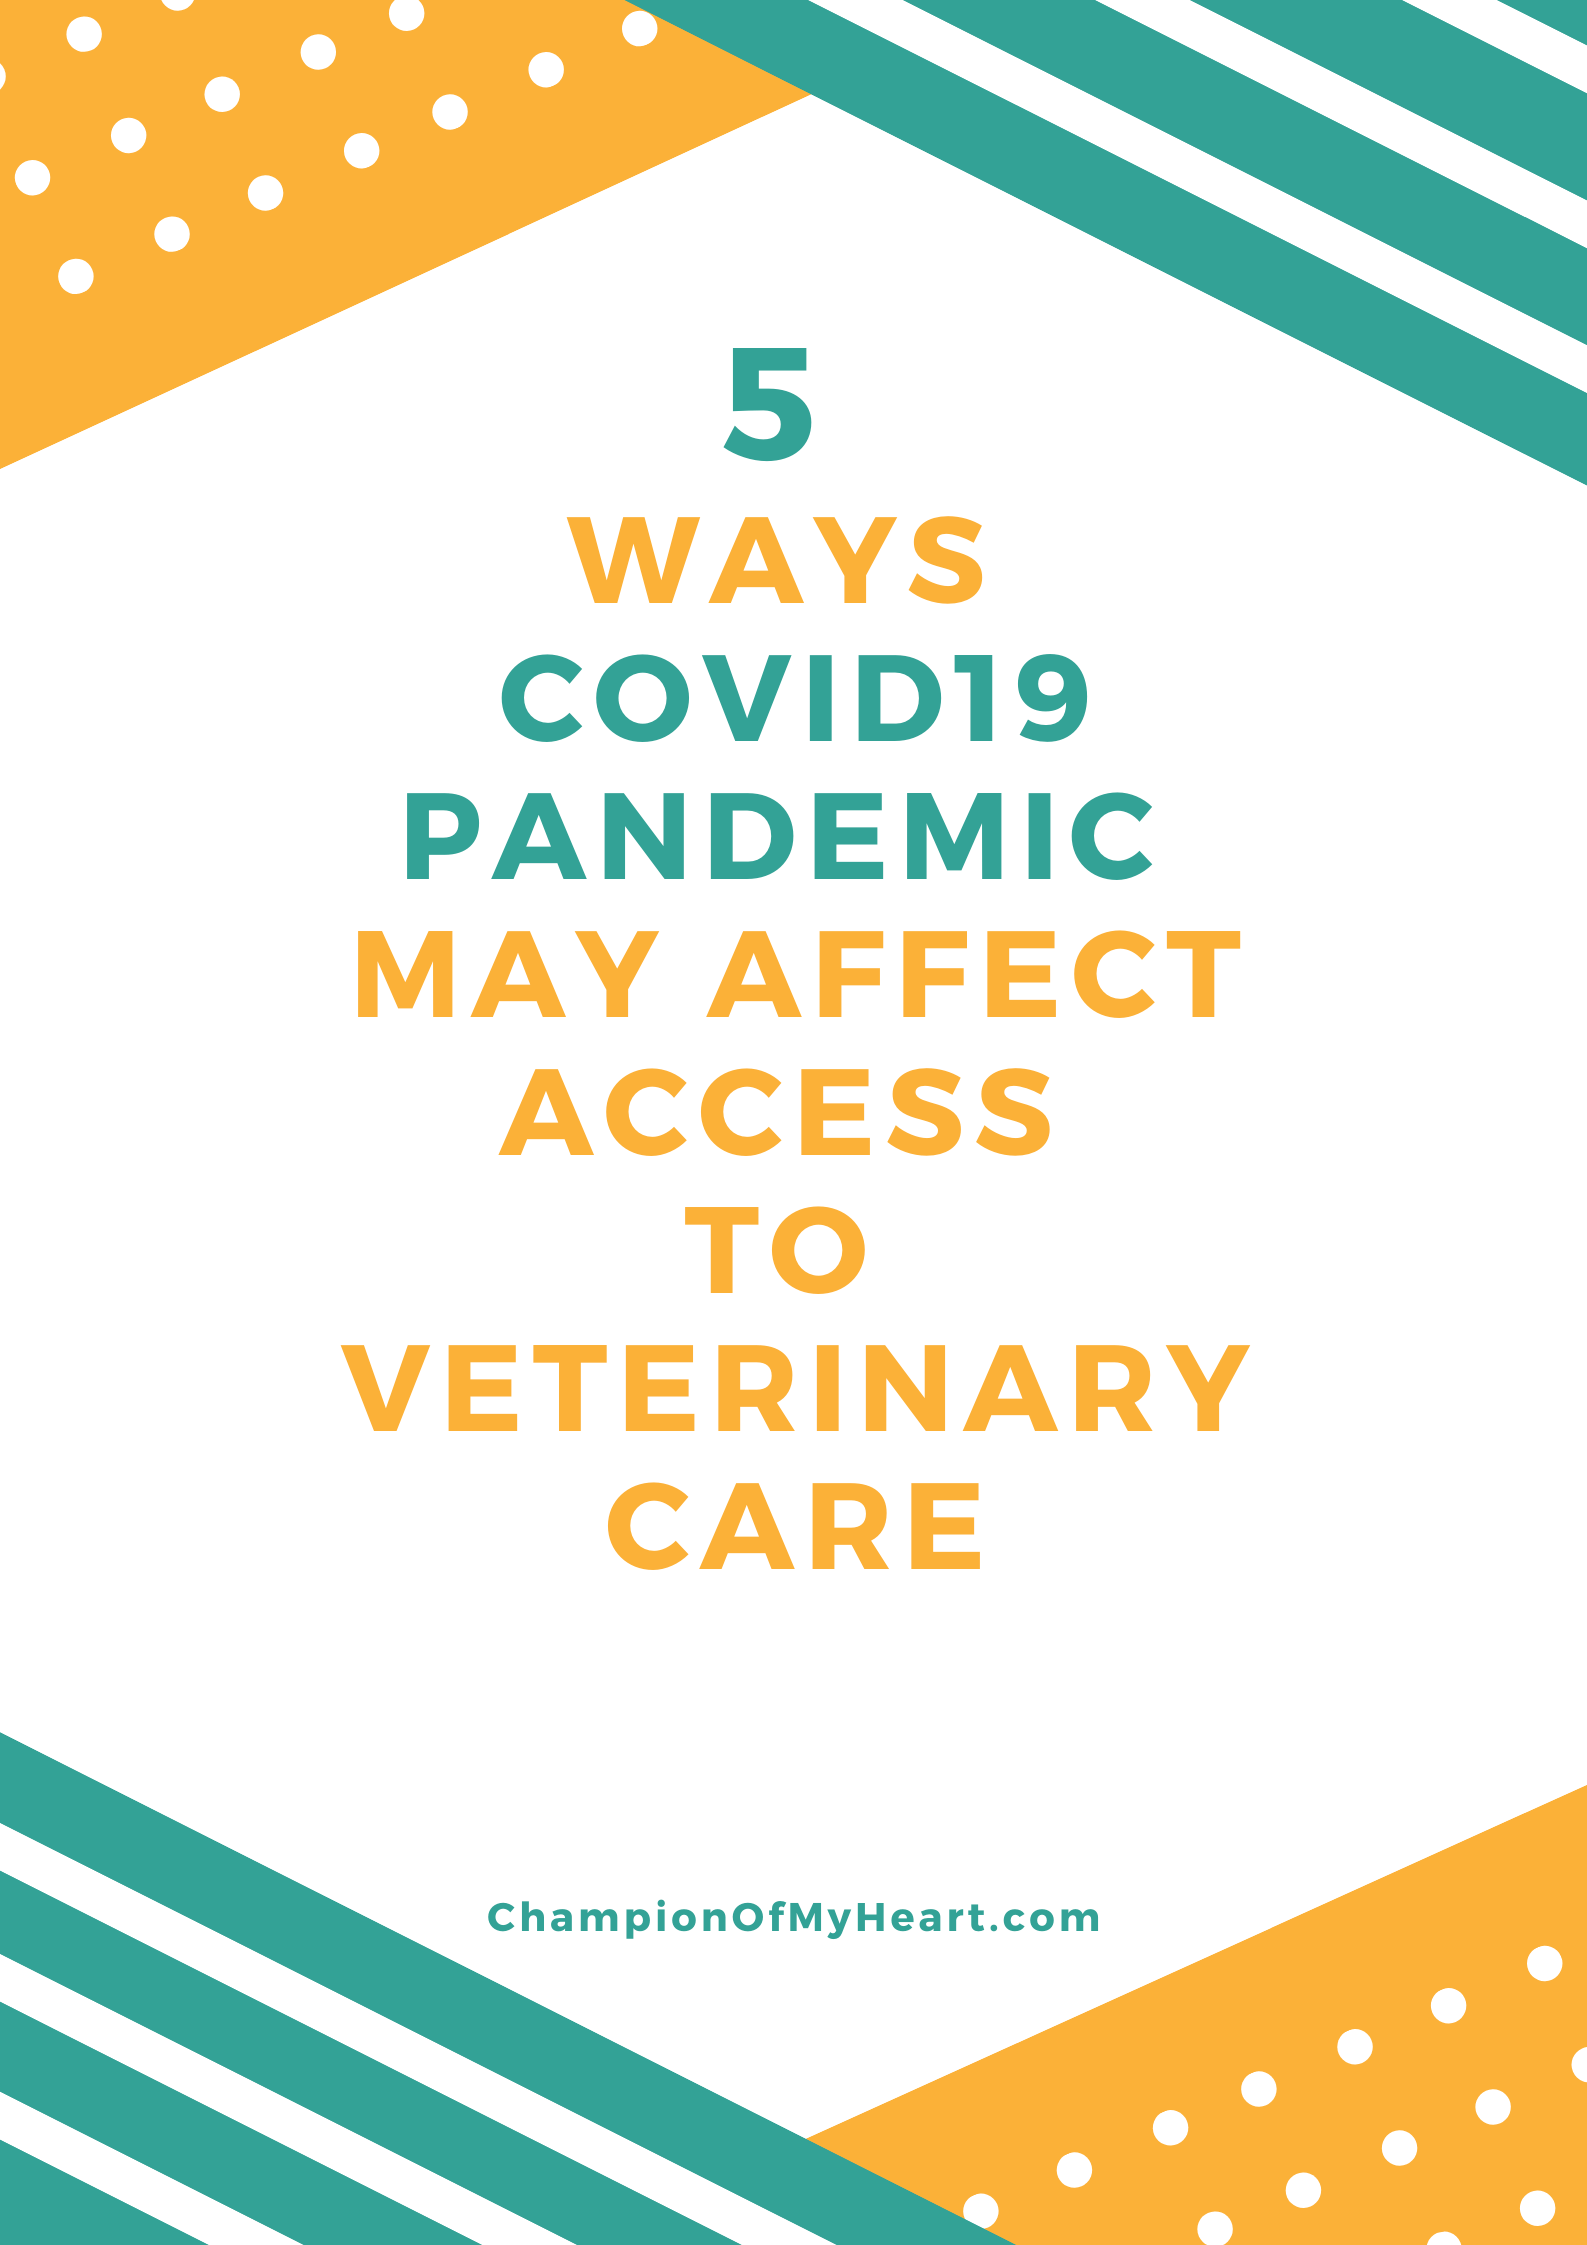 COVID19 Pandemic May Affect Access to Veterinary Care